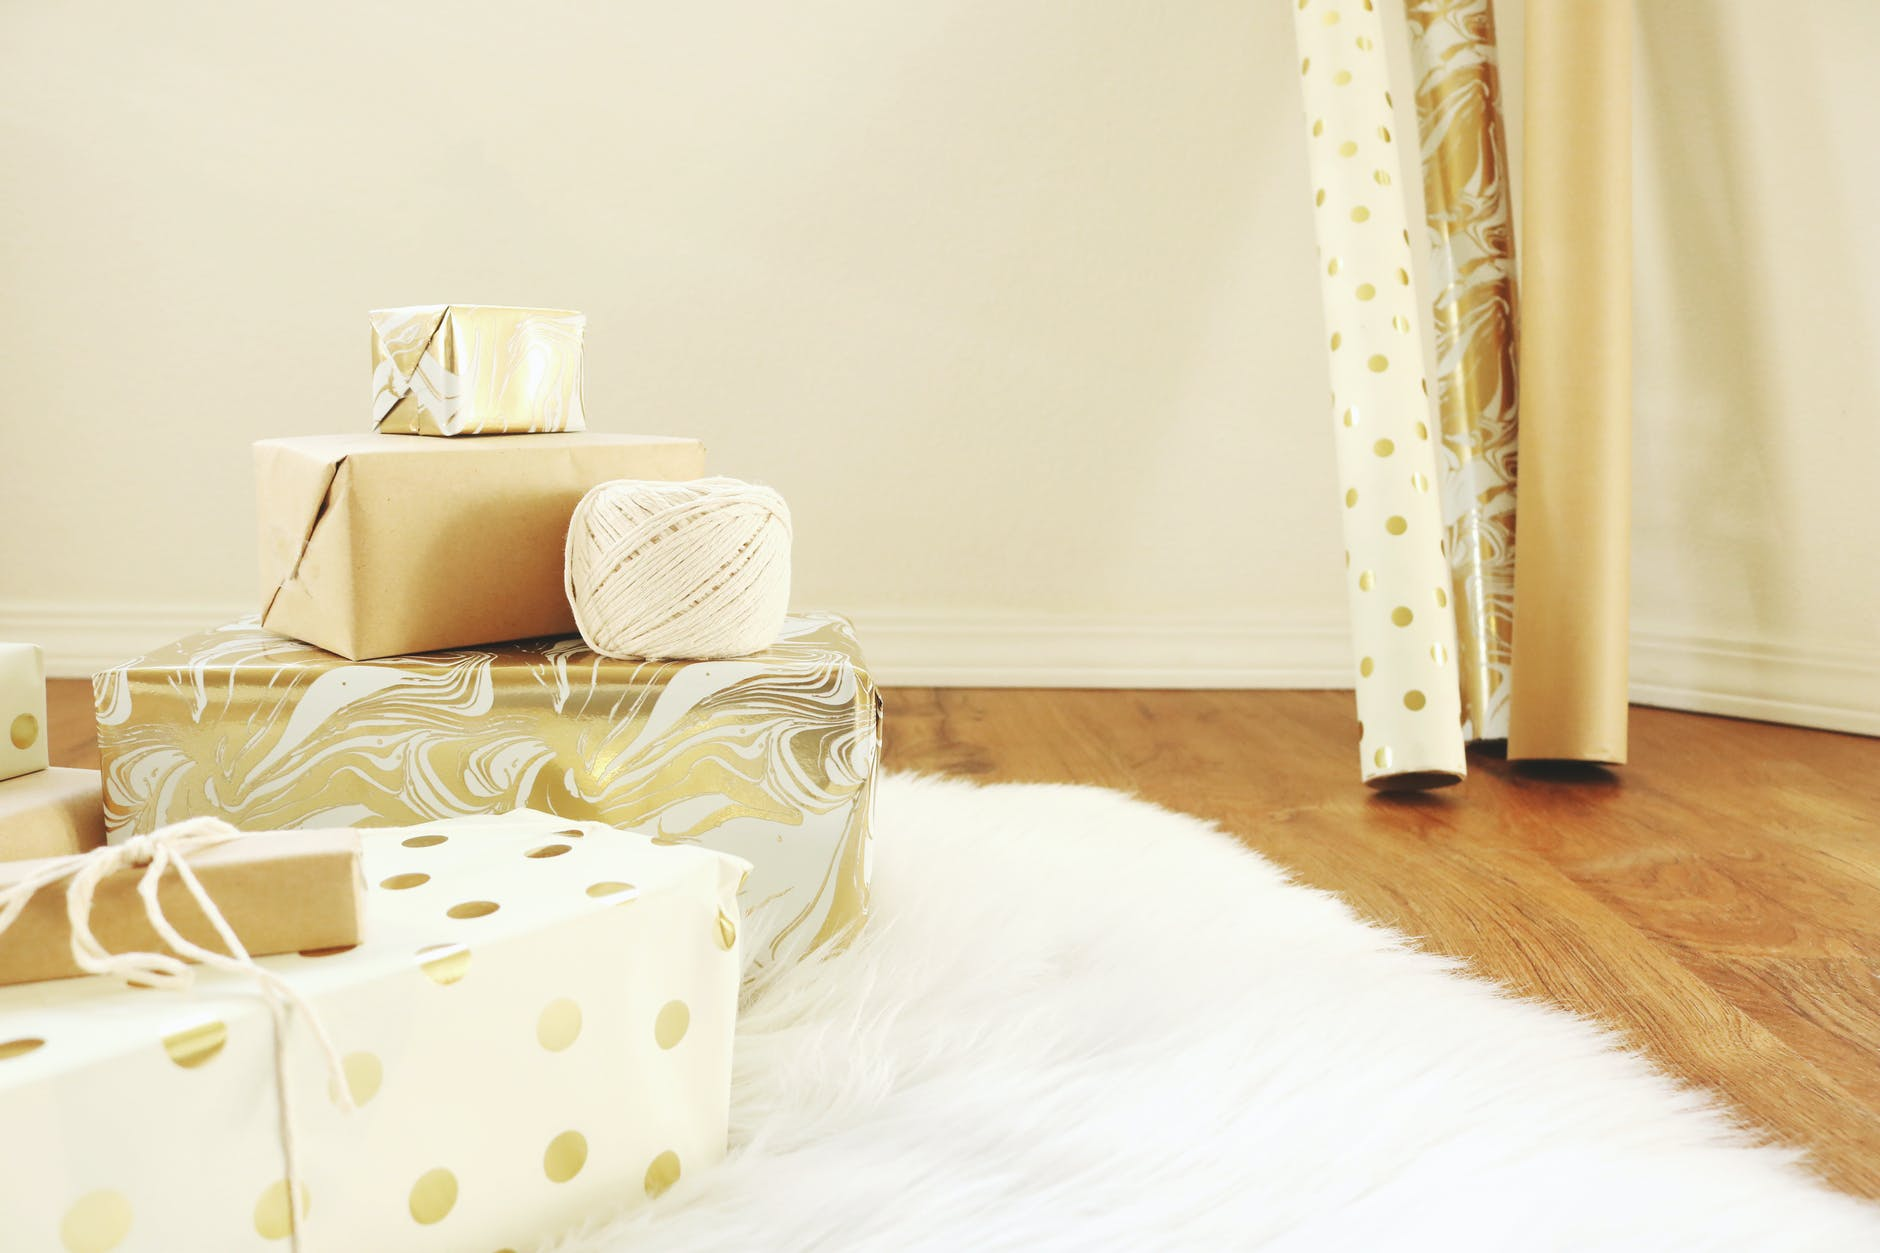 MILESTONE GIFT IDEAS FOR THE ONE YOU LOVE